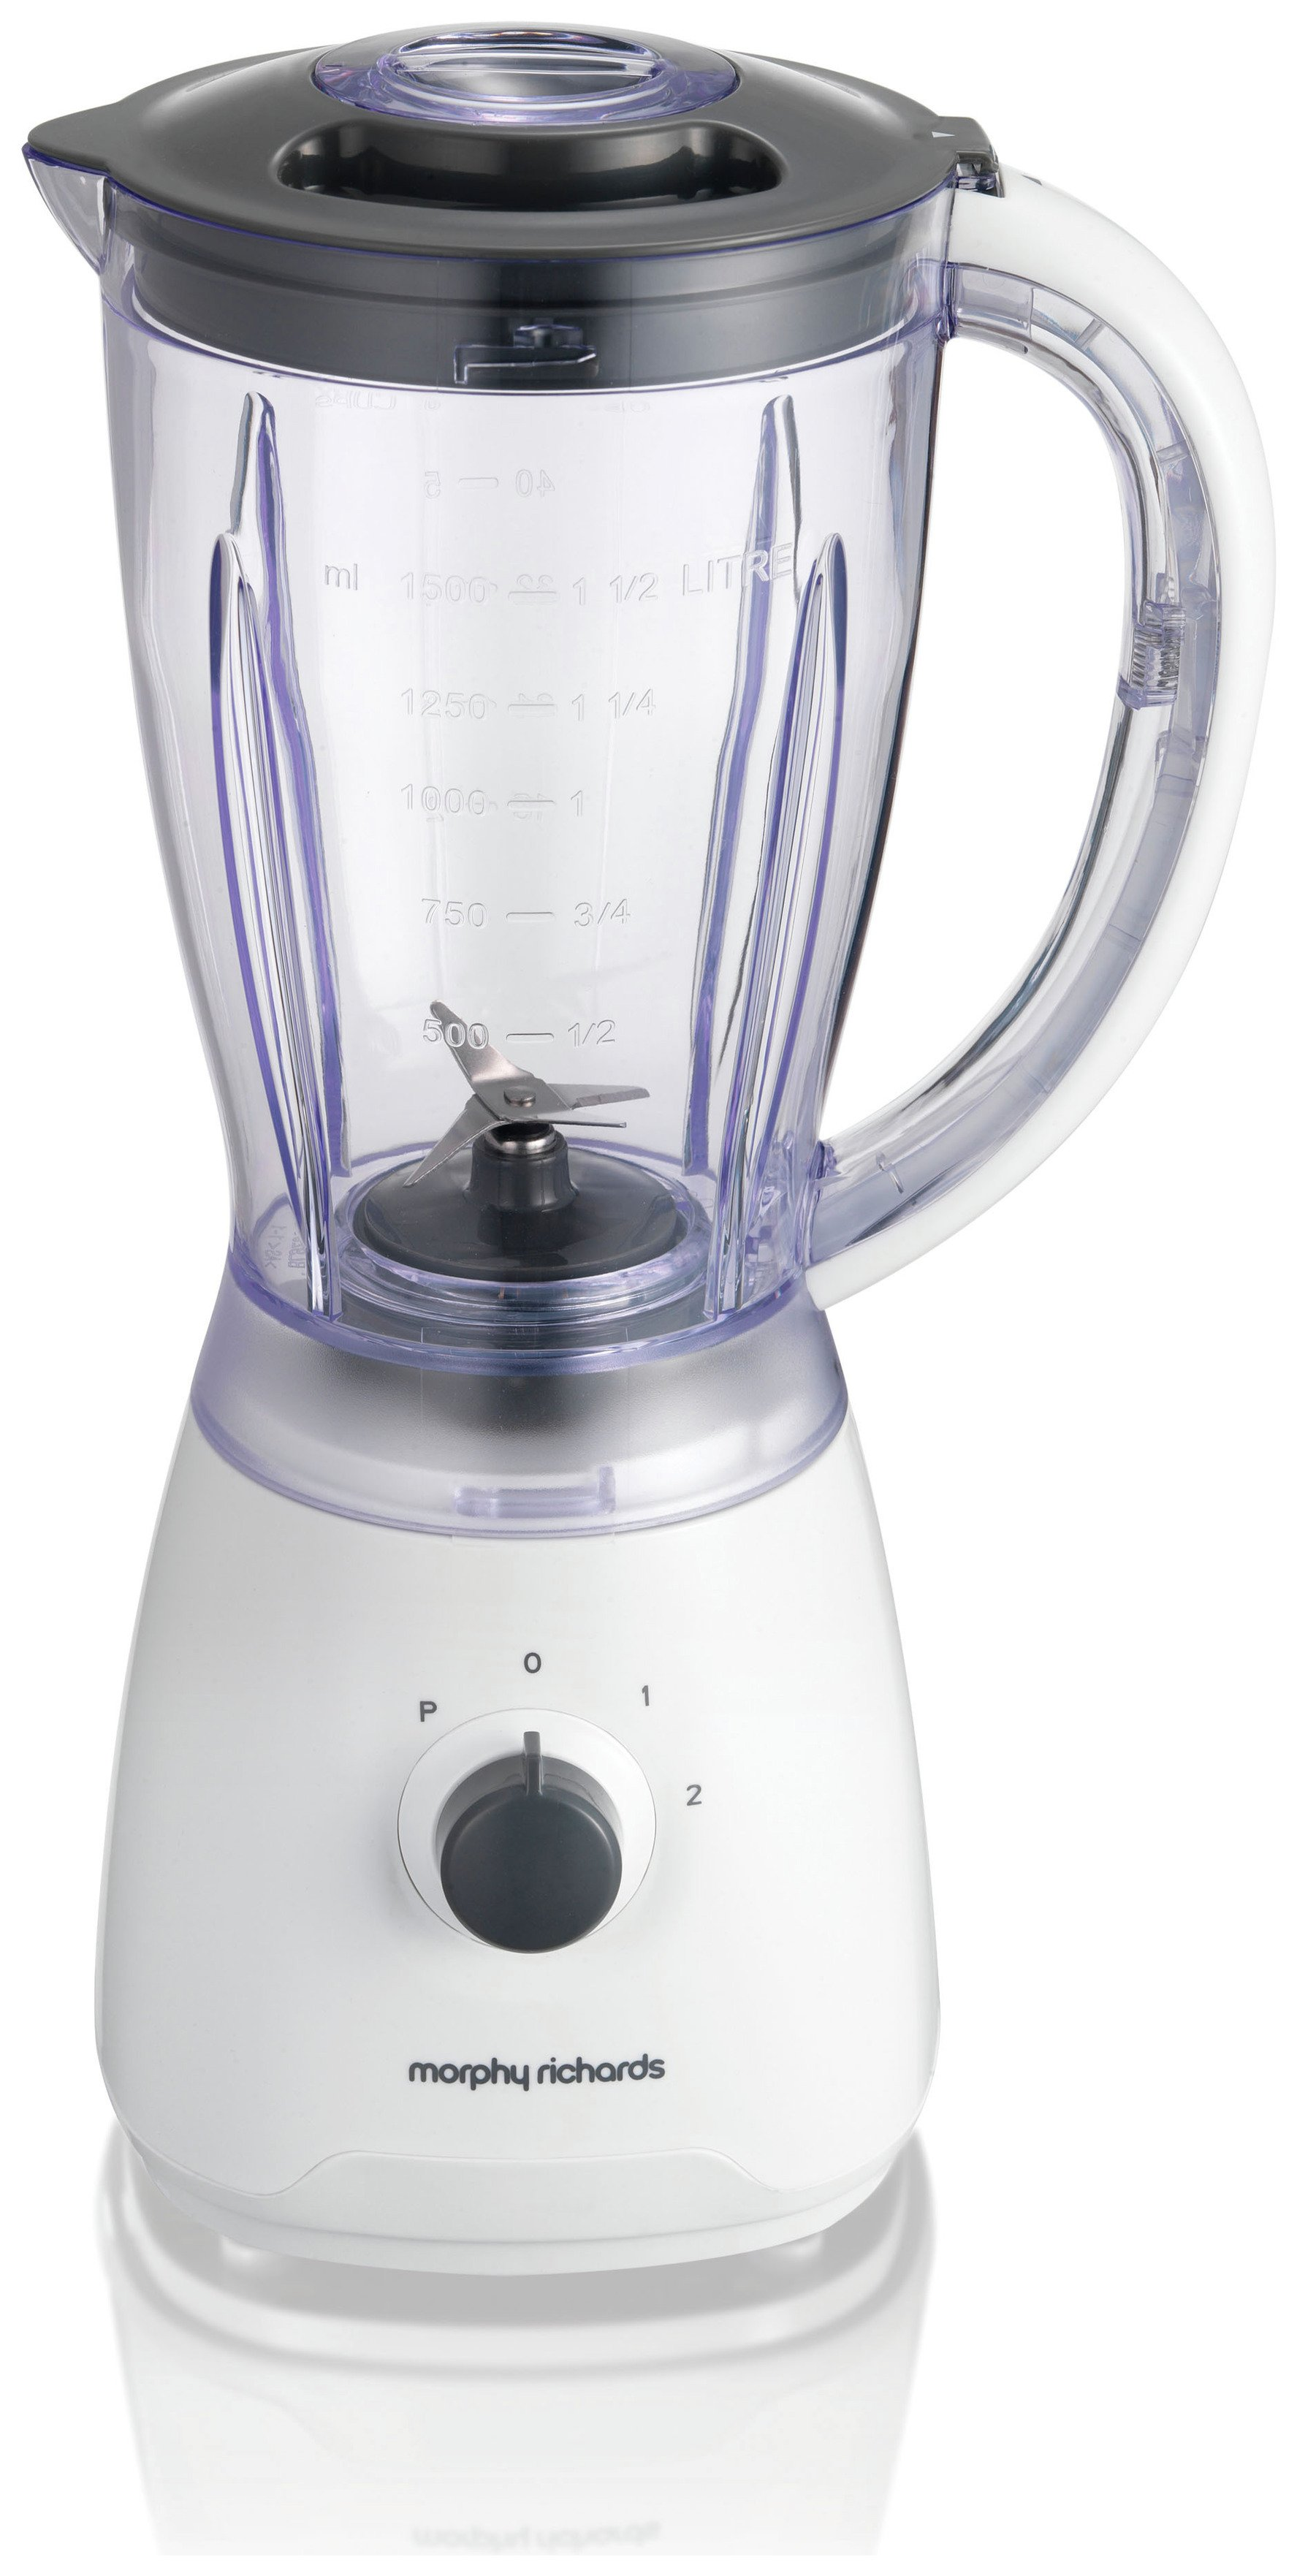 Morphy Richards 403050 Blender White